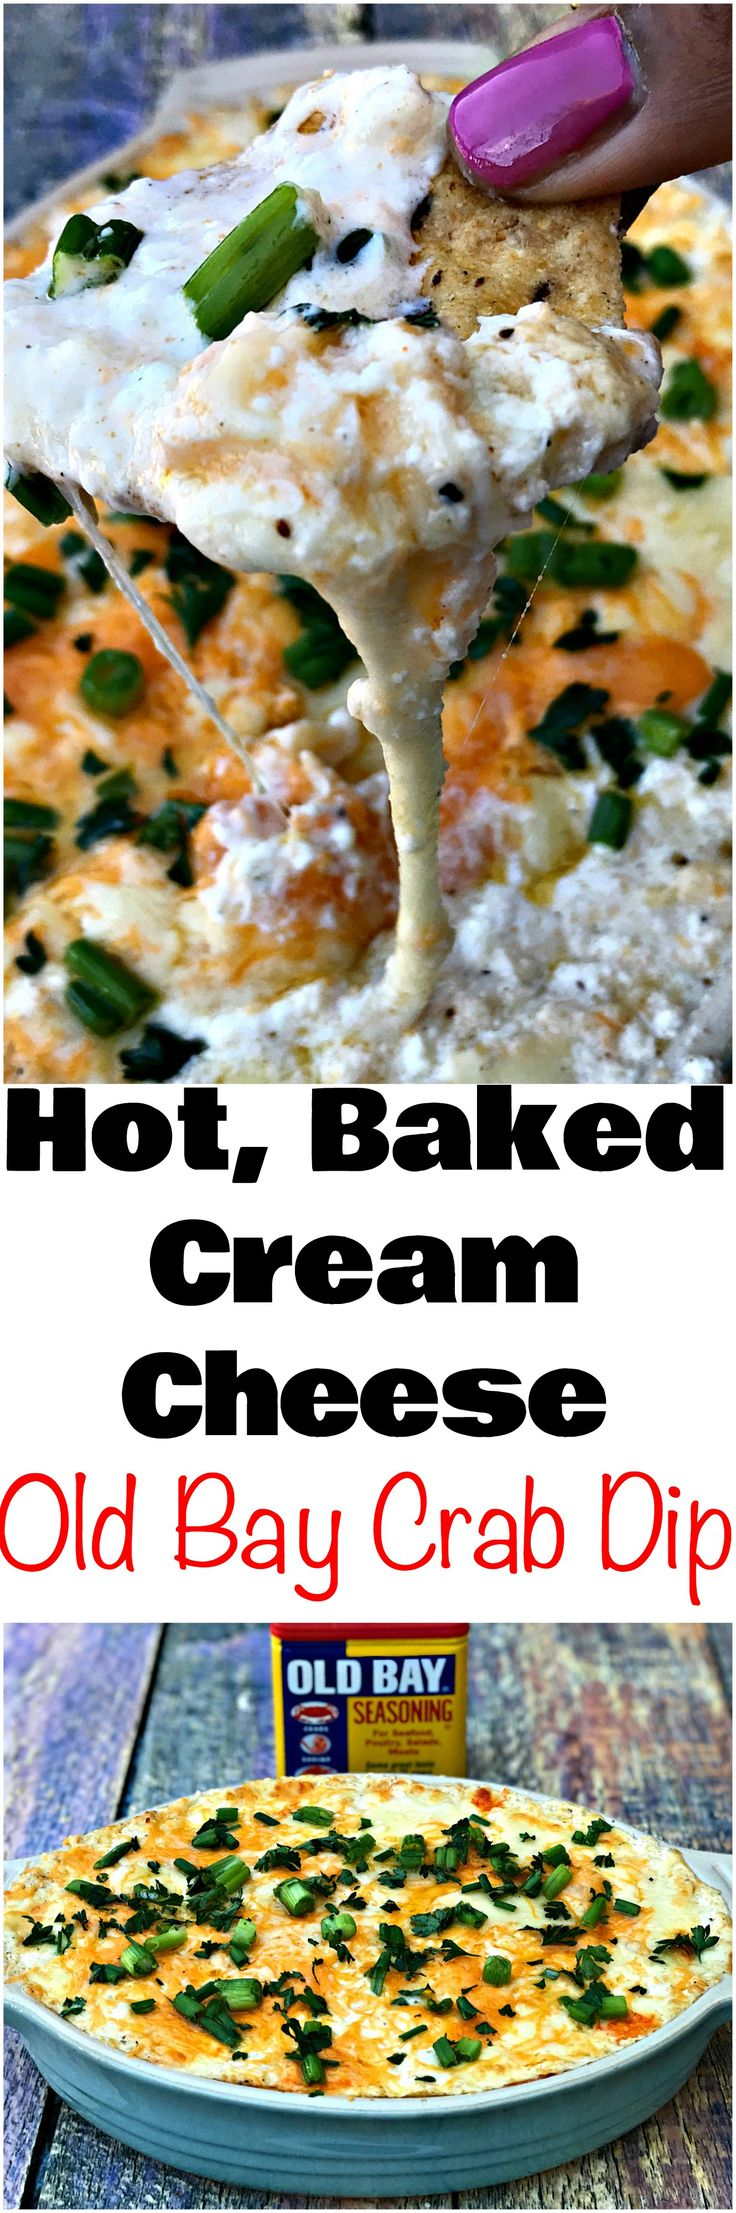 Hot Cream Cheese Old Bay Seafood Crab Dip is a healthy, keto, low-carb recipe made with jumbo lump crab meat, white cheddar cheese, a dash of red pepper flakes. #GameDay #GameDayRecipes #SeafoodRecipes #CrabRecipes #CreoleRecipes #CajunRecipes #LowCarb #LowCarbRecipes #KetoRecipes #Appetizers #Dips